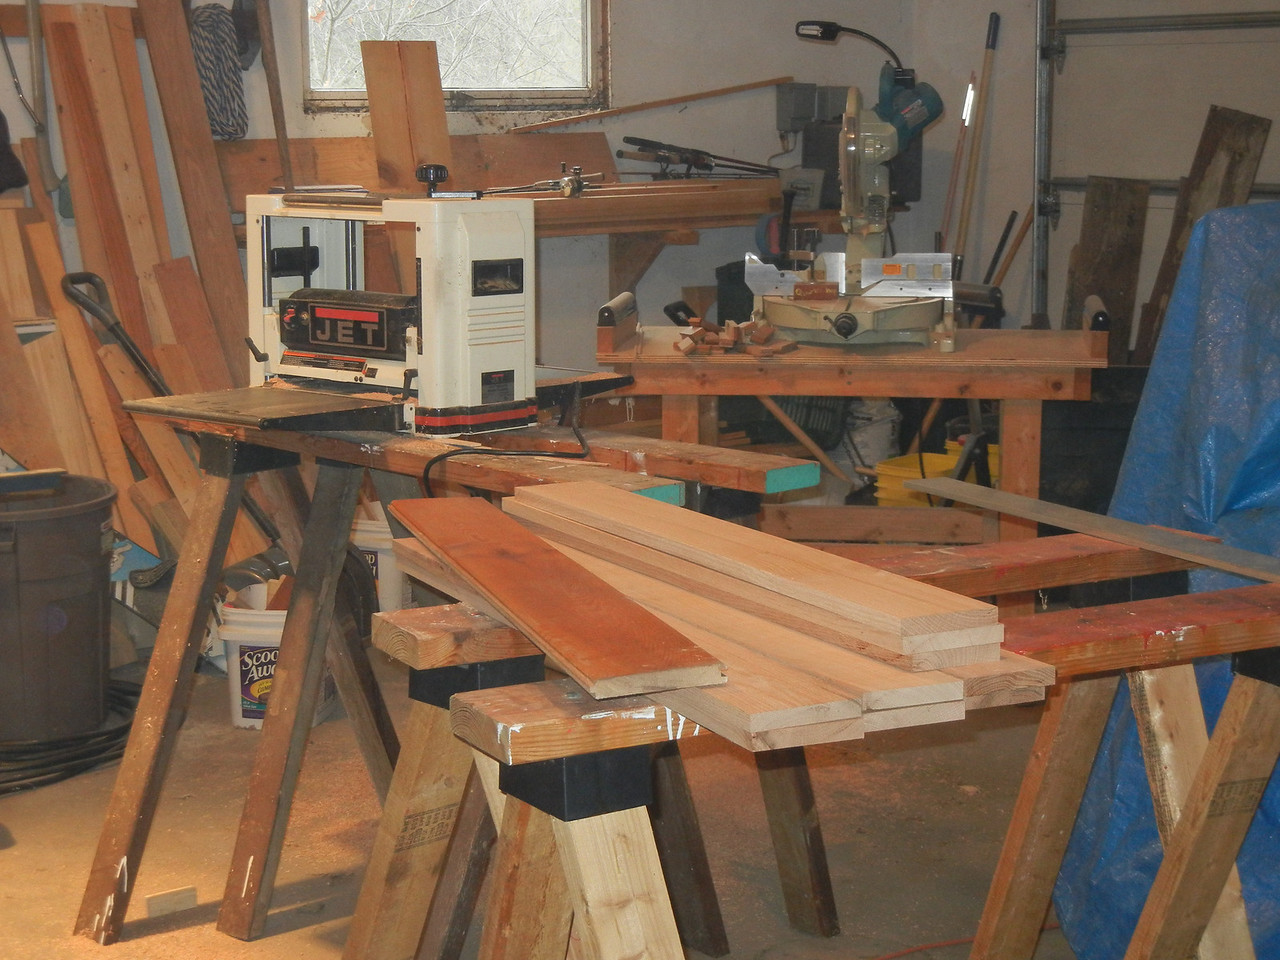 I trimmed the wainscoting on the table saw, and planed it into nice square boards. For free! Well, except for the cost of the tools.